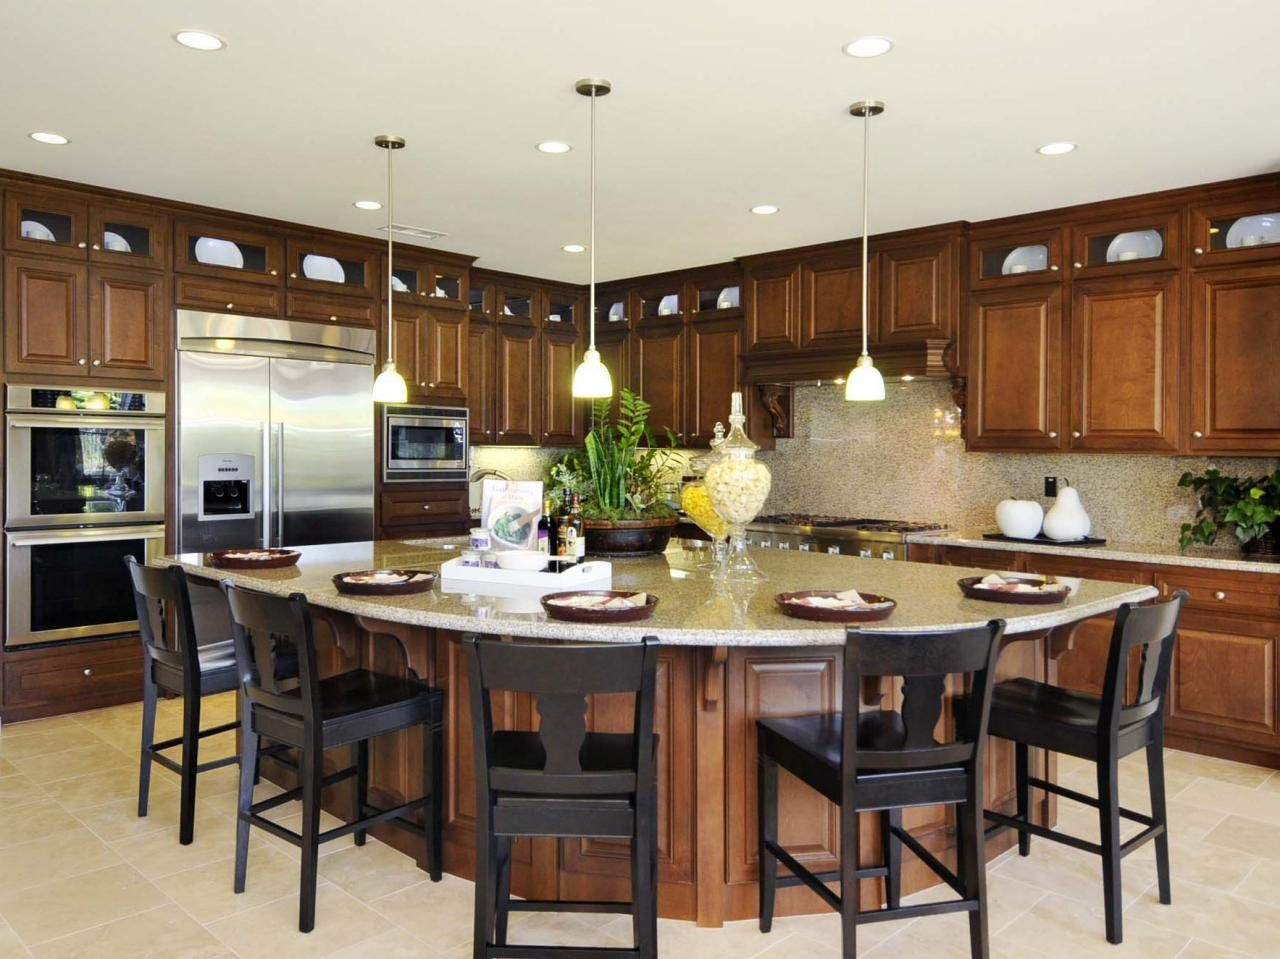 Big Is A Kitchen Island Kitchen island design ideas pictures options tips island kitchen island design ideas pictures options tips kitchen designs choose kitchen layouts remodeling materials hgtv workwithnaturefo